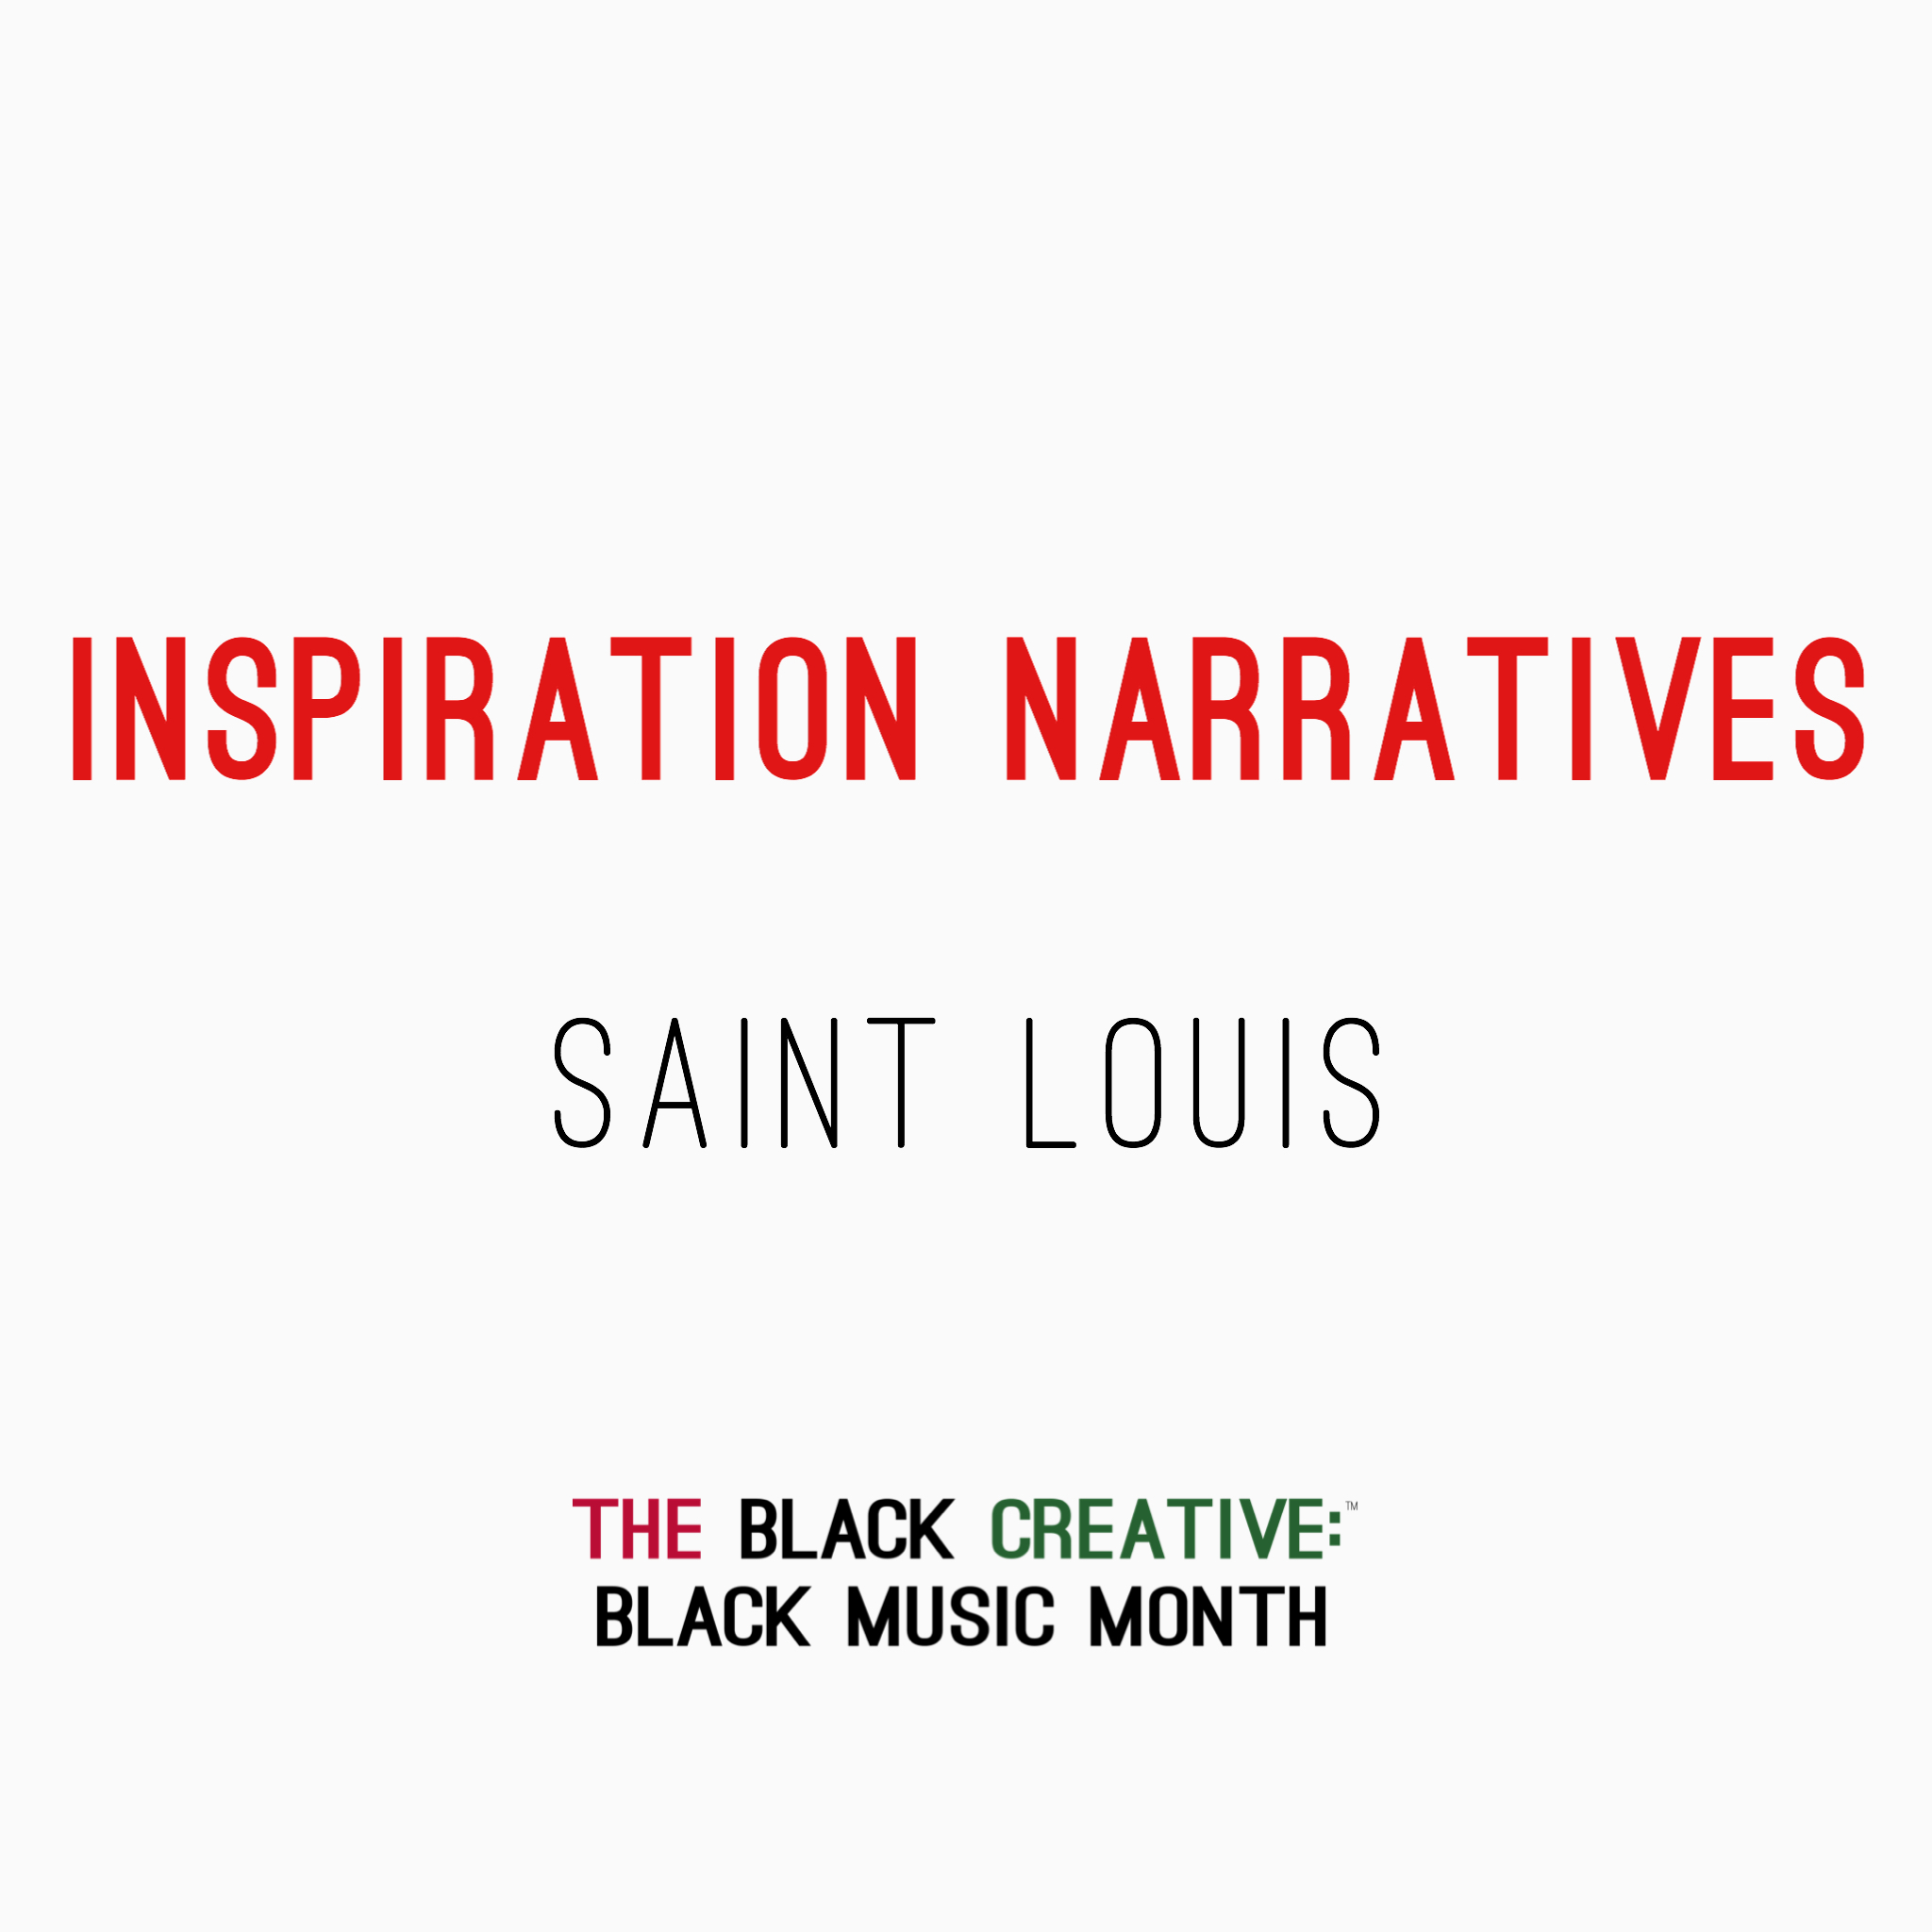 Saint Louis - Inspiration Narrative